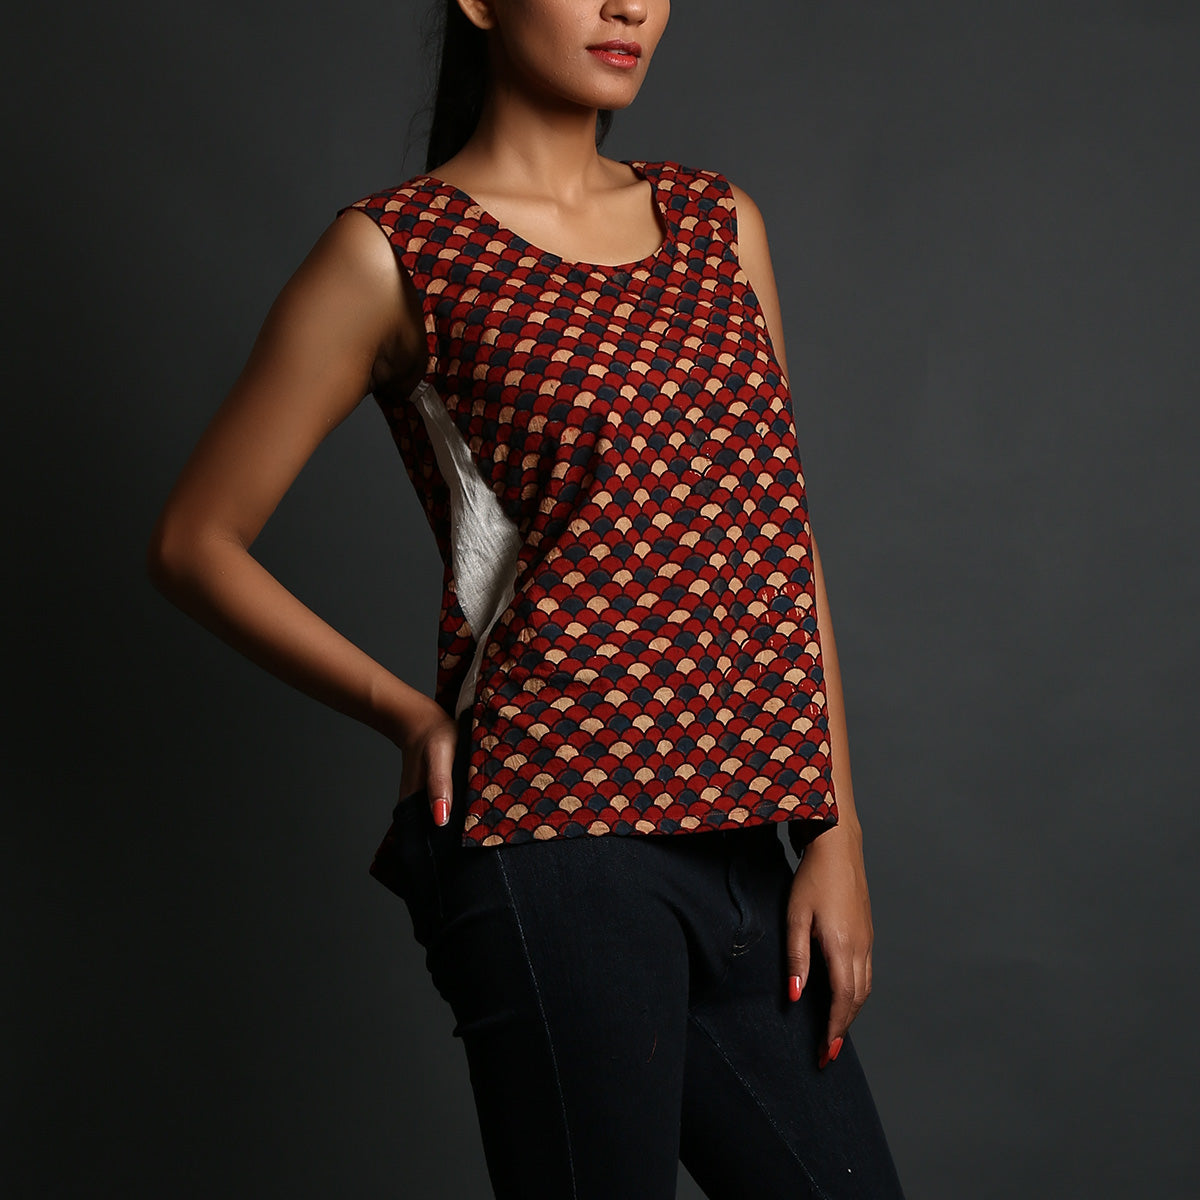 Red Coloured with small scales Ajrakh Hand Block Printed Tank Top